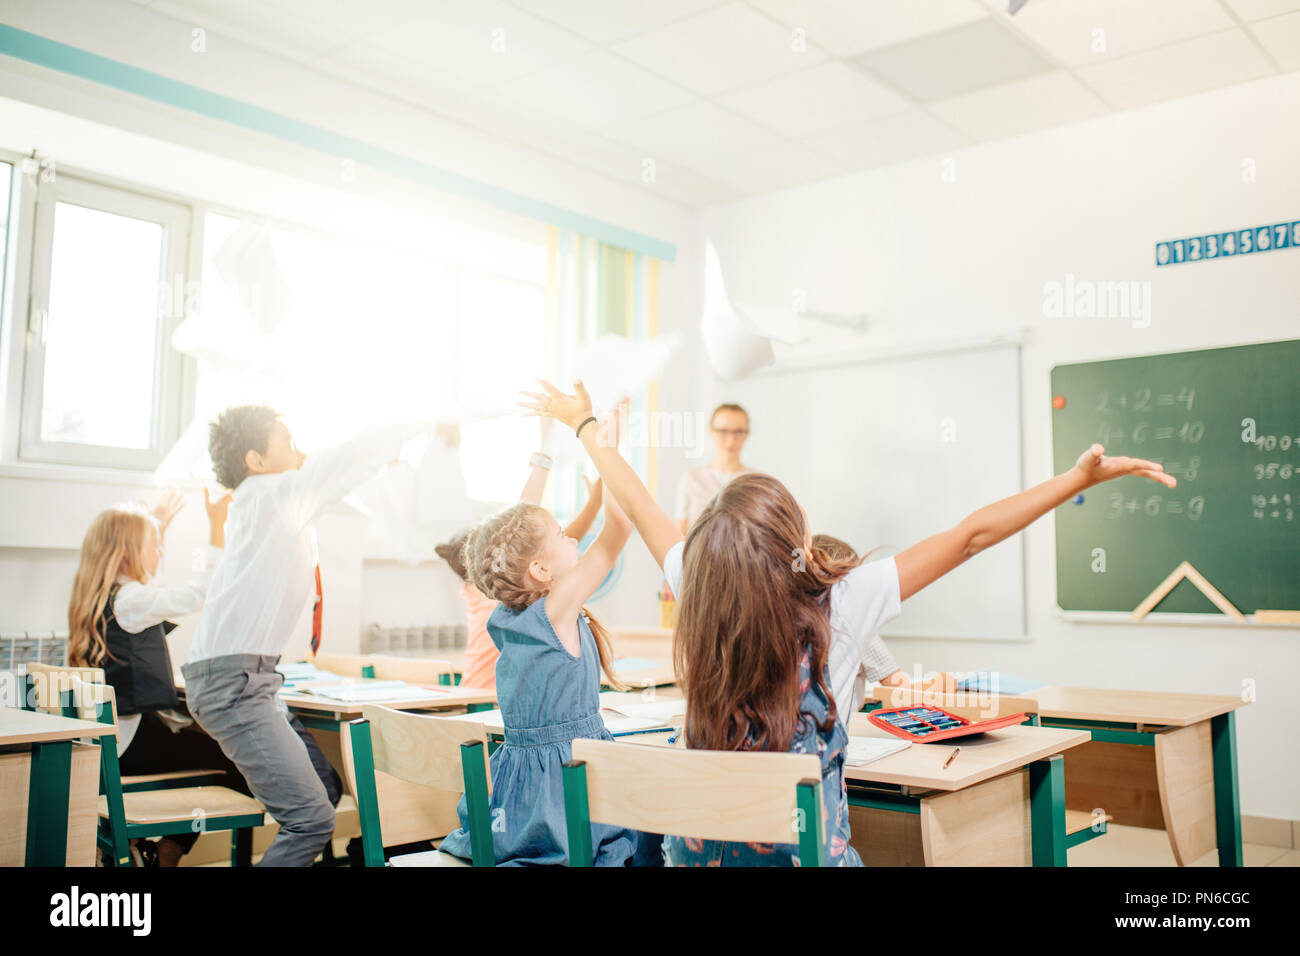 school kids have fun in class and throwing paper in air - Stock Image